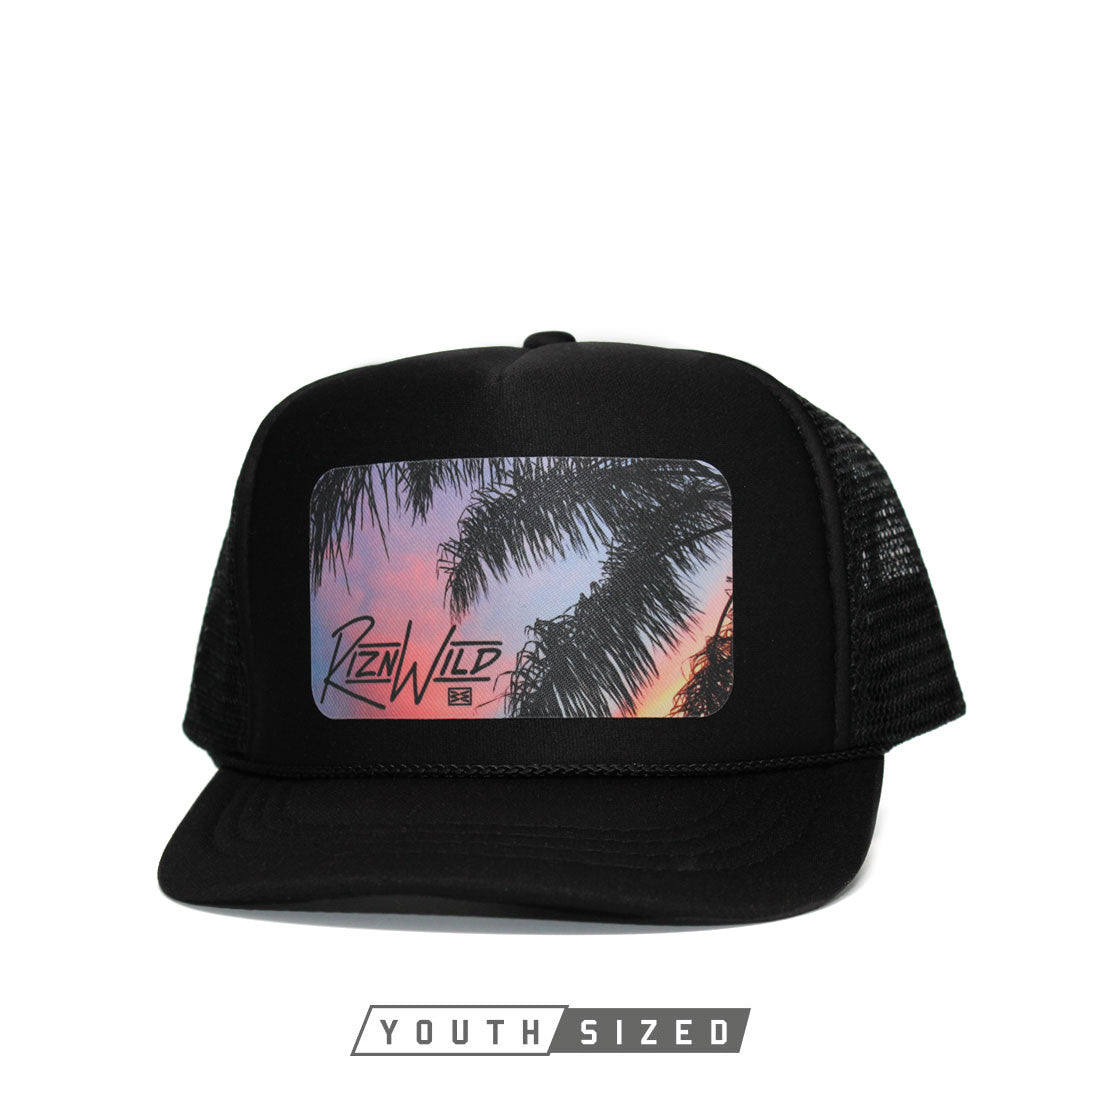 RIZNWILD | Youth black trucker hat with cool colorful sunset design